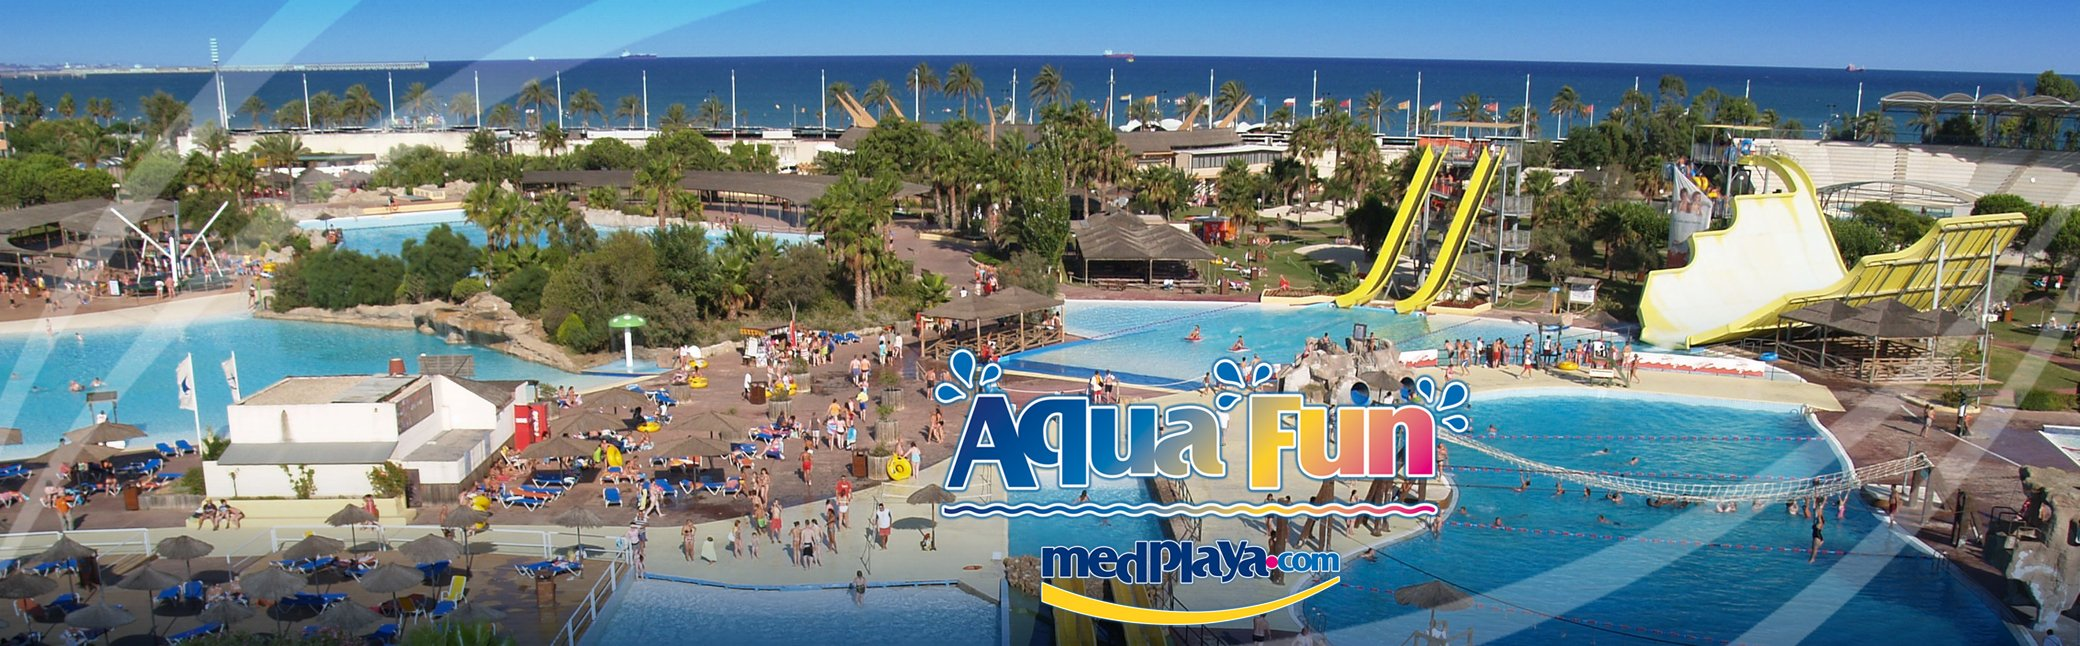 AQUAFUN + HOTEL CALYPSO - waterpark entrance and transport included